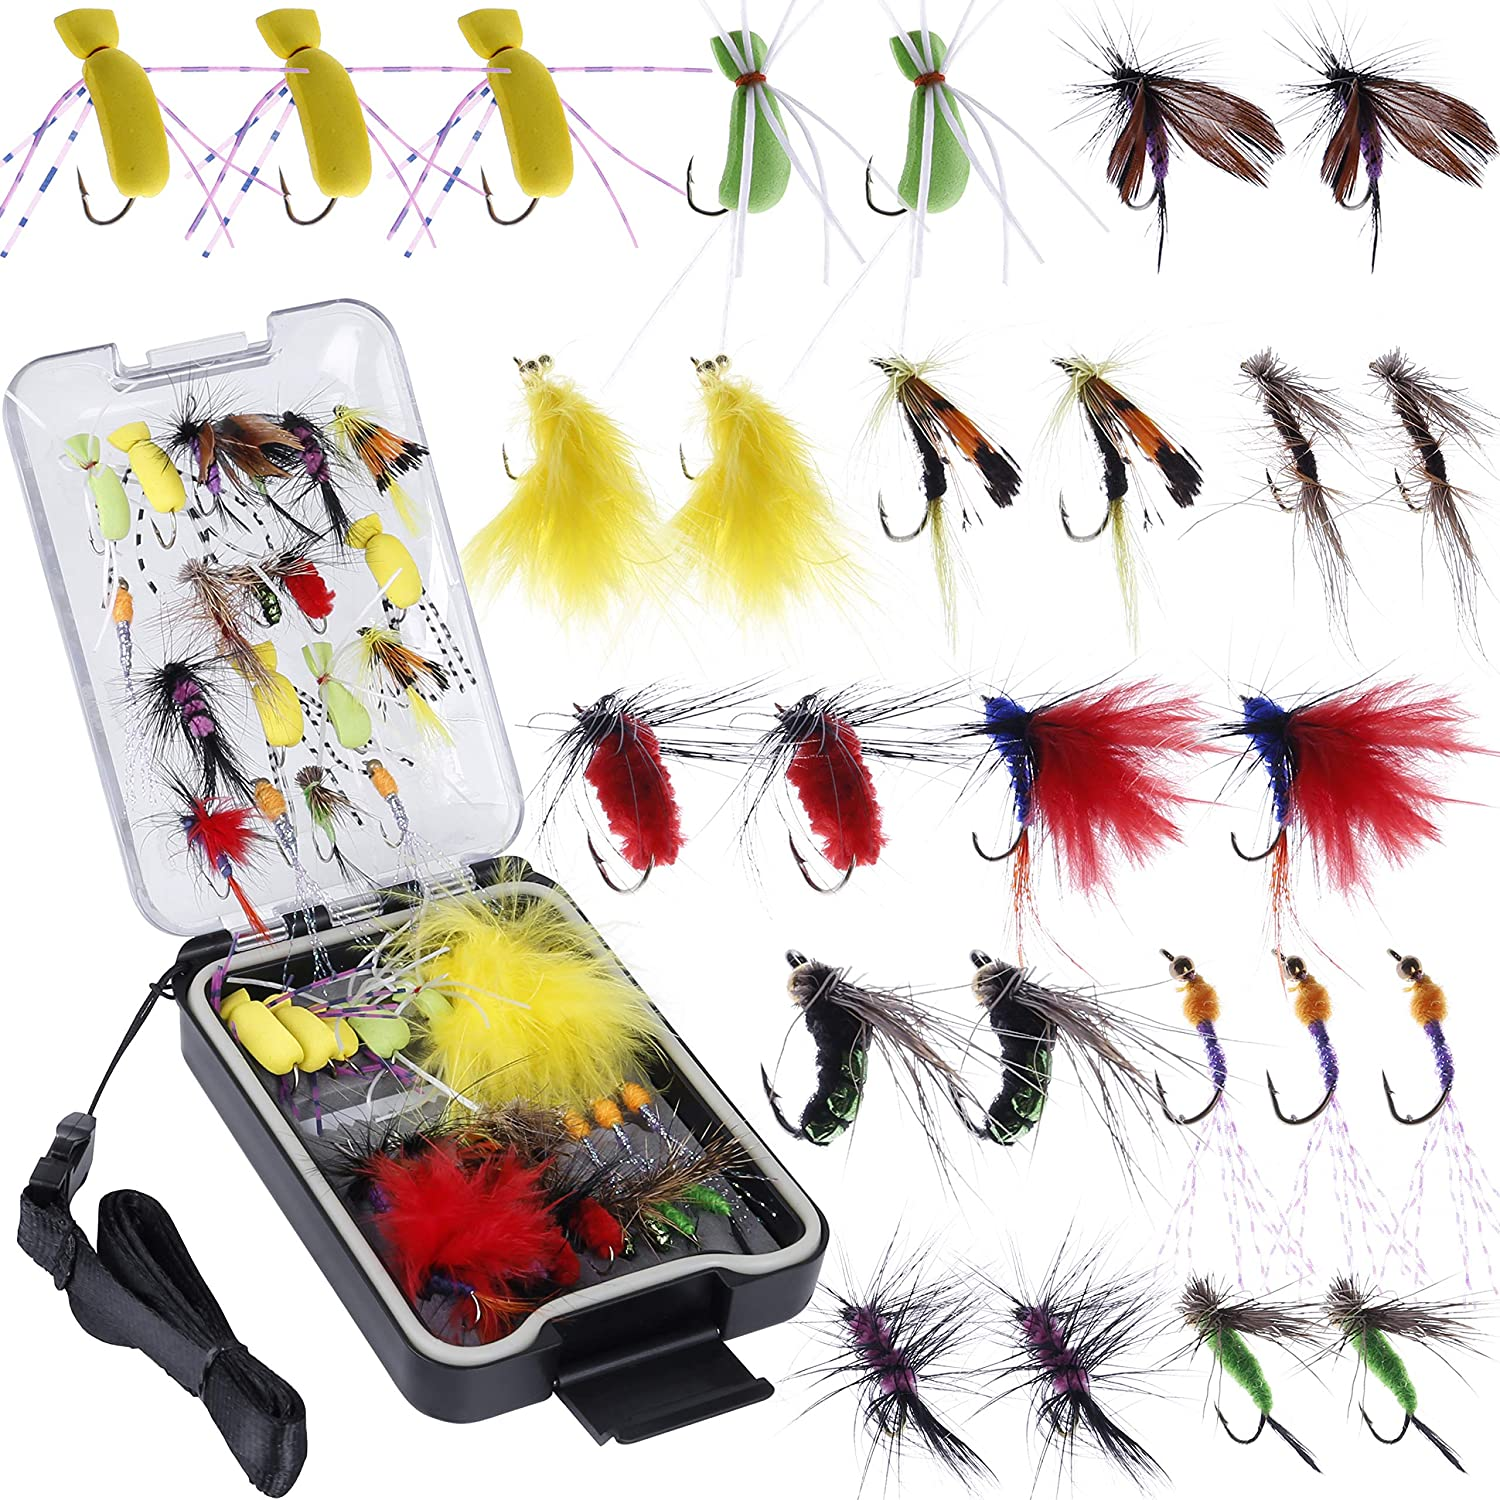 PLUSINNO Fly Fishing Flies Kit, 26/78Pcs Handmade Fly Fishing Gear with Dry/Wet Flies, Streamers, Fly Assortment Trout Bass Fishing with Fly Box : Sports & Outdoors